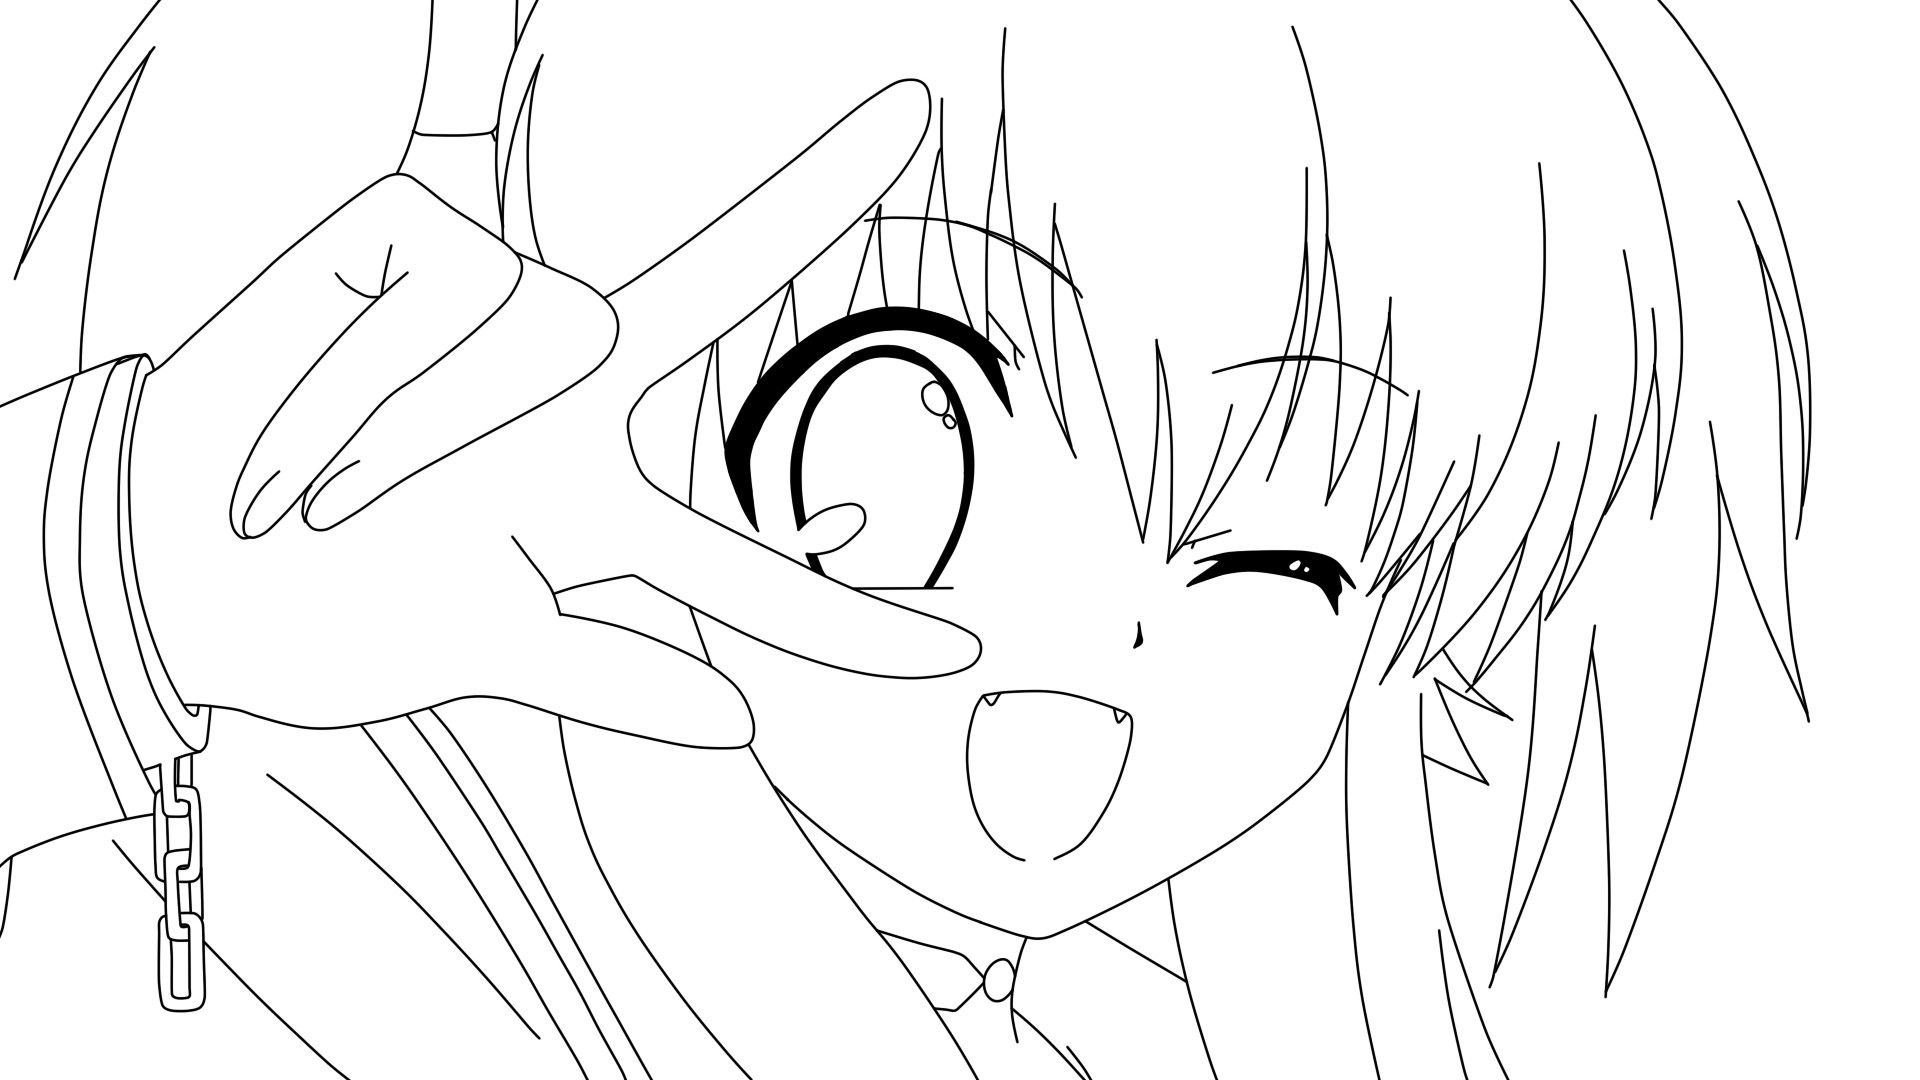 1920x1080 Awesome Anime Girl Coloring Sheets Coloring For Kids Free